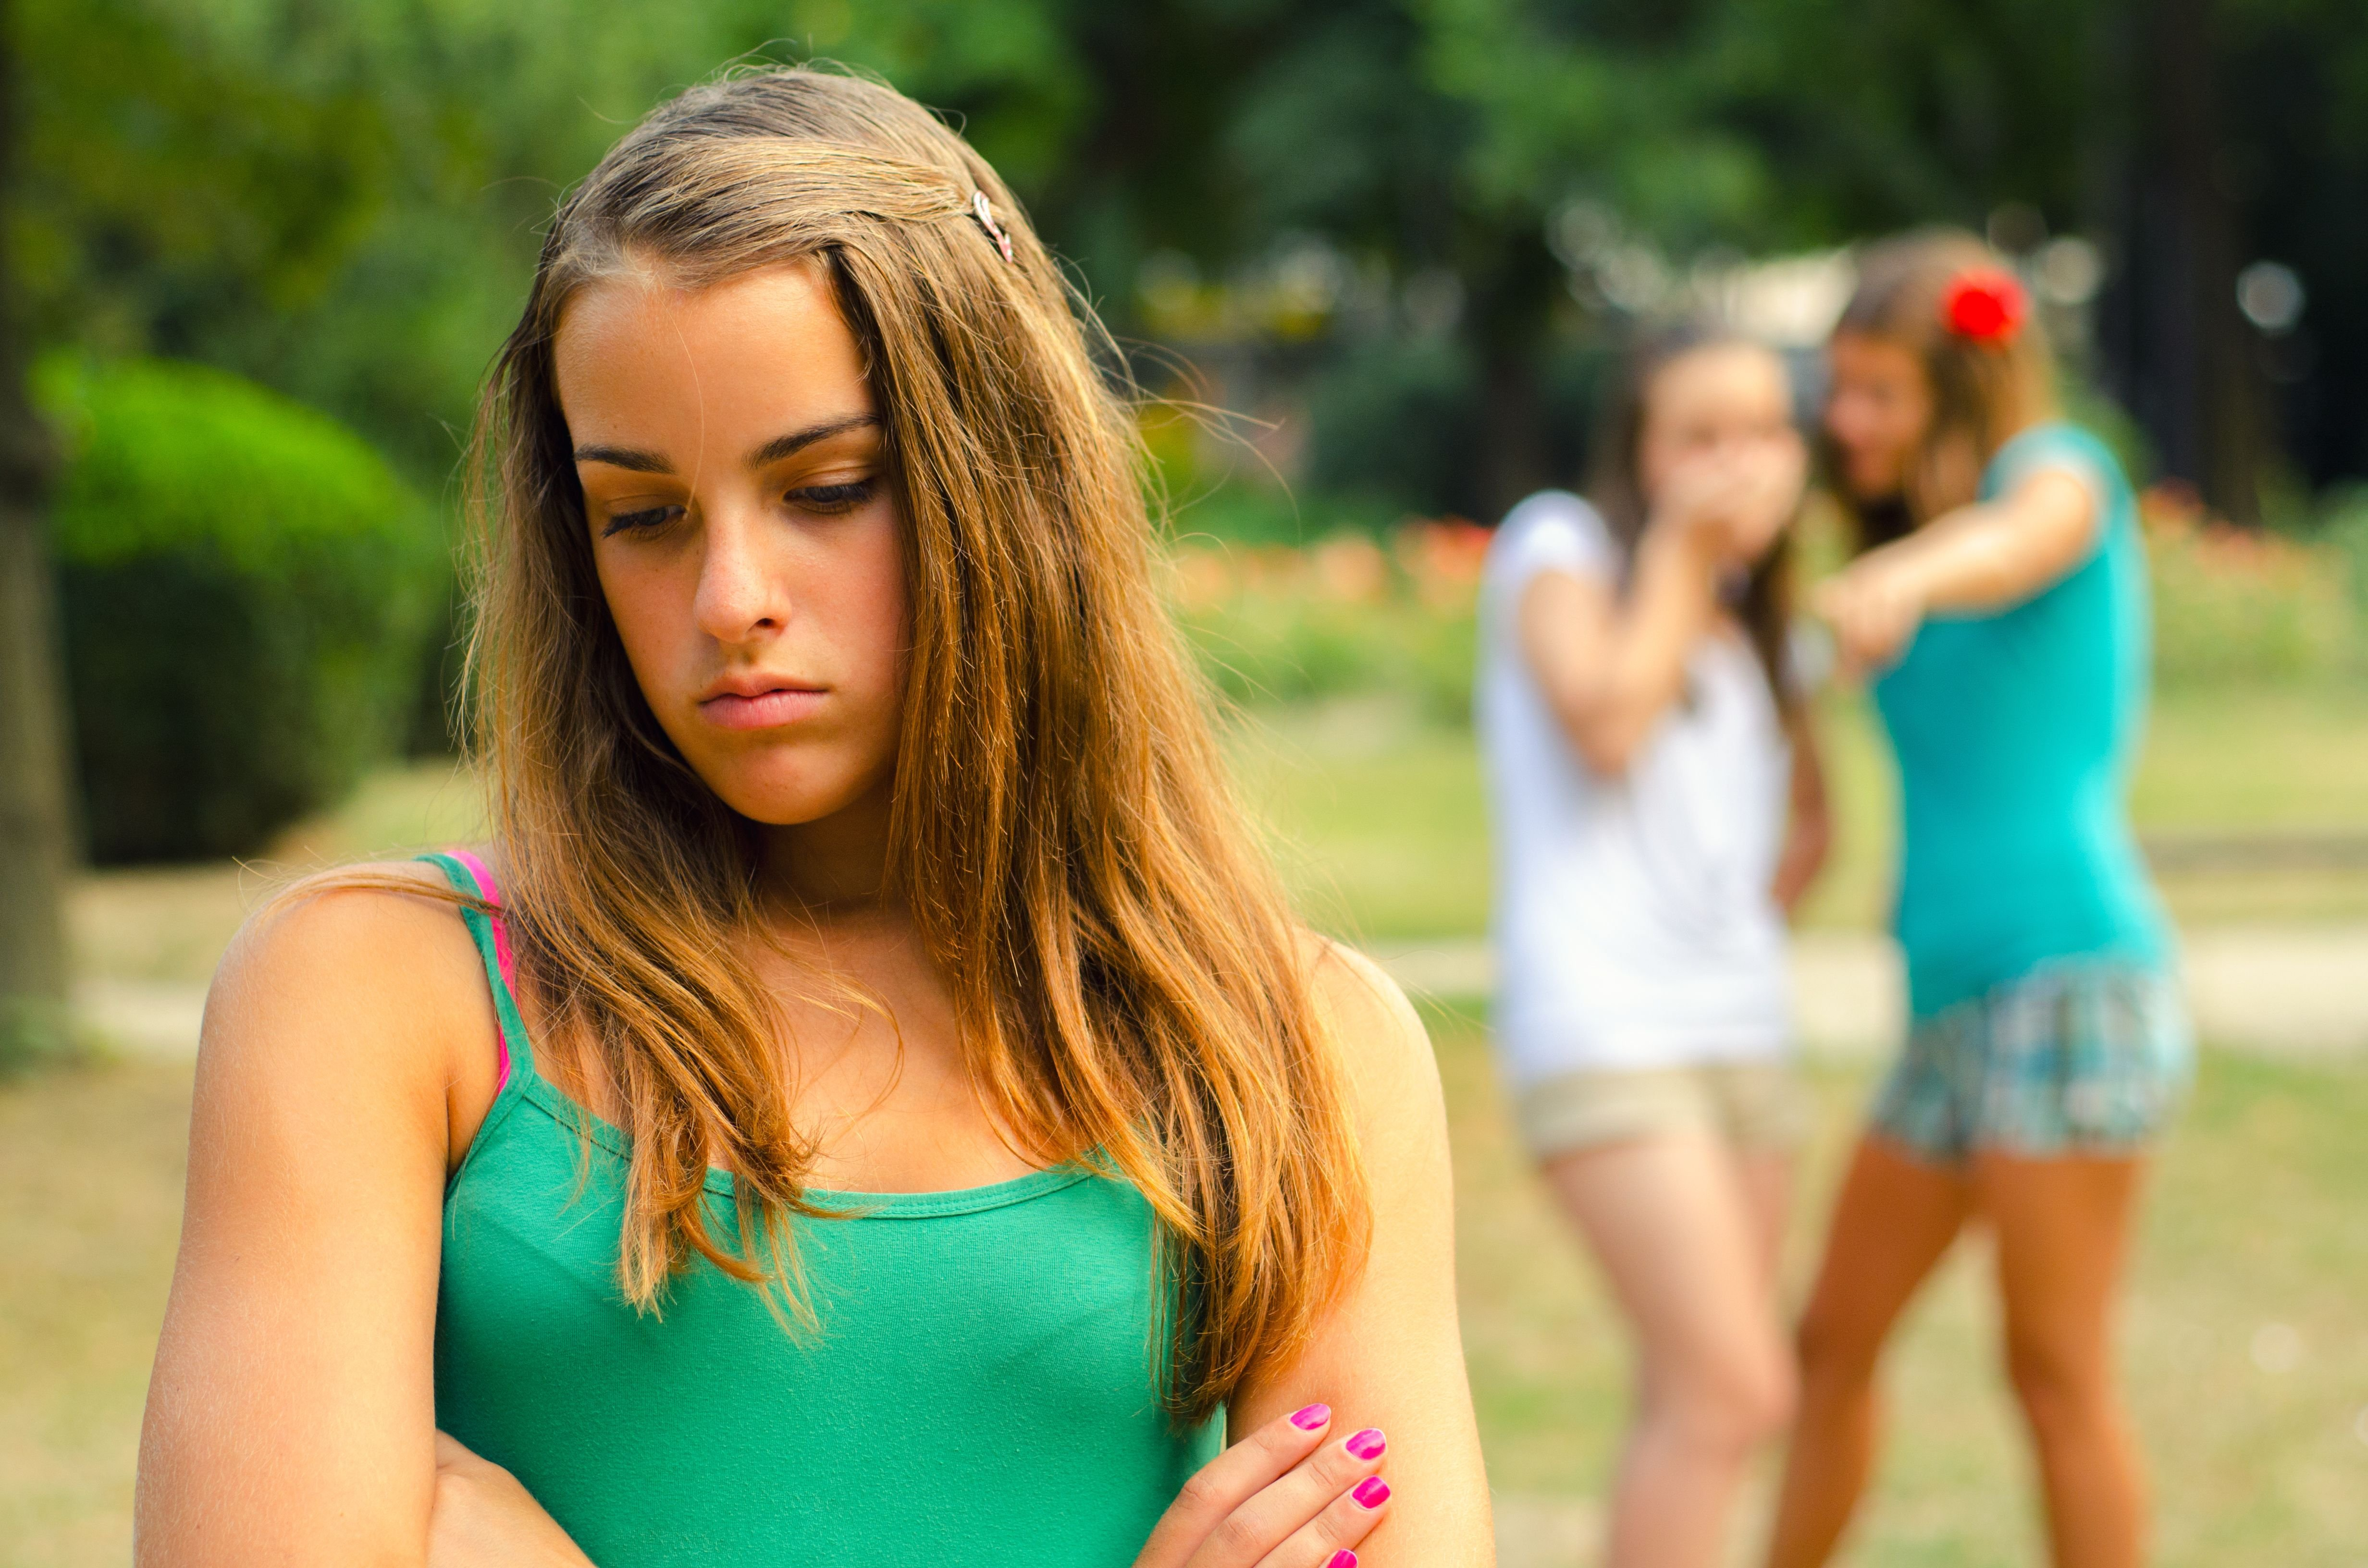 A teen being laughed at by her peers. | Source: Shutterstock